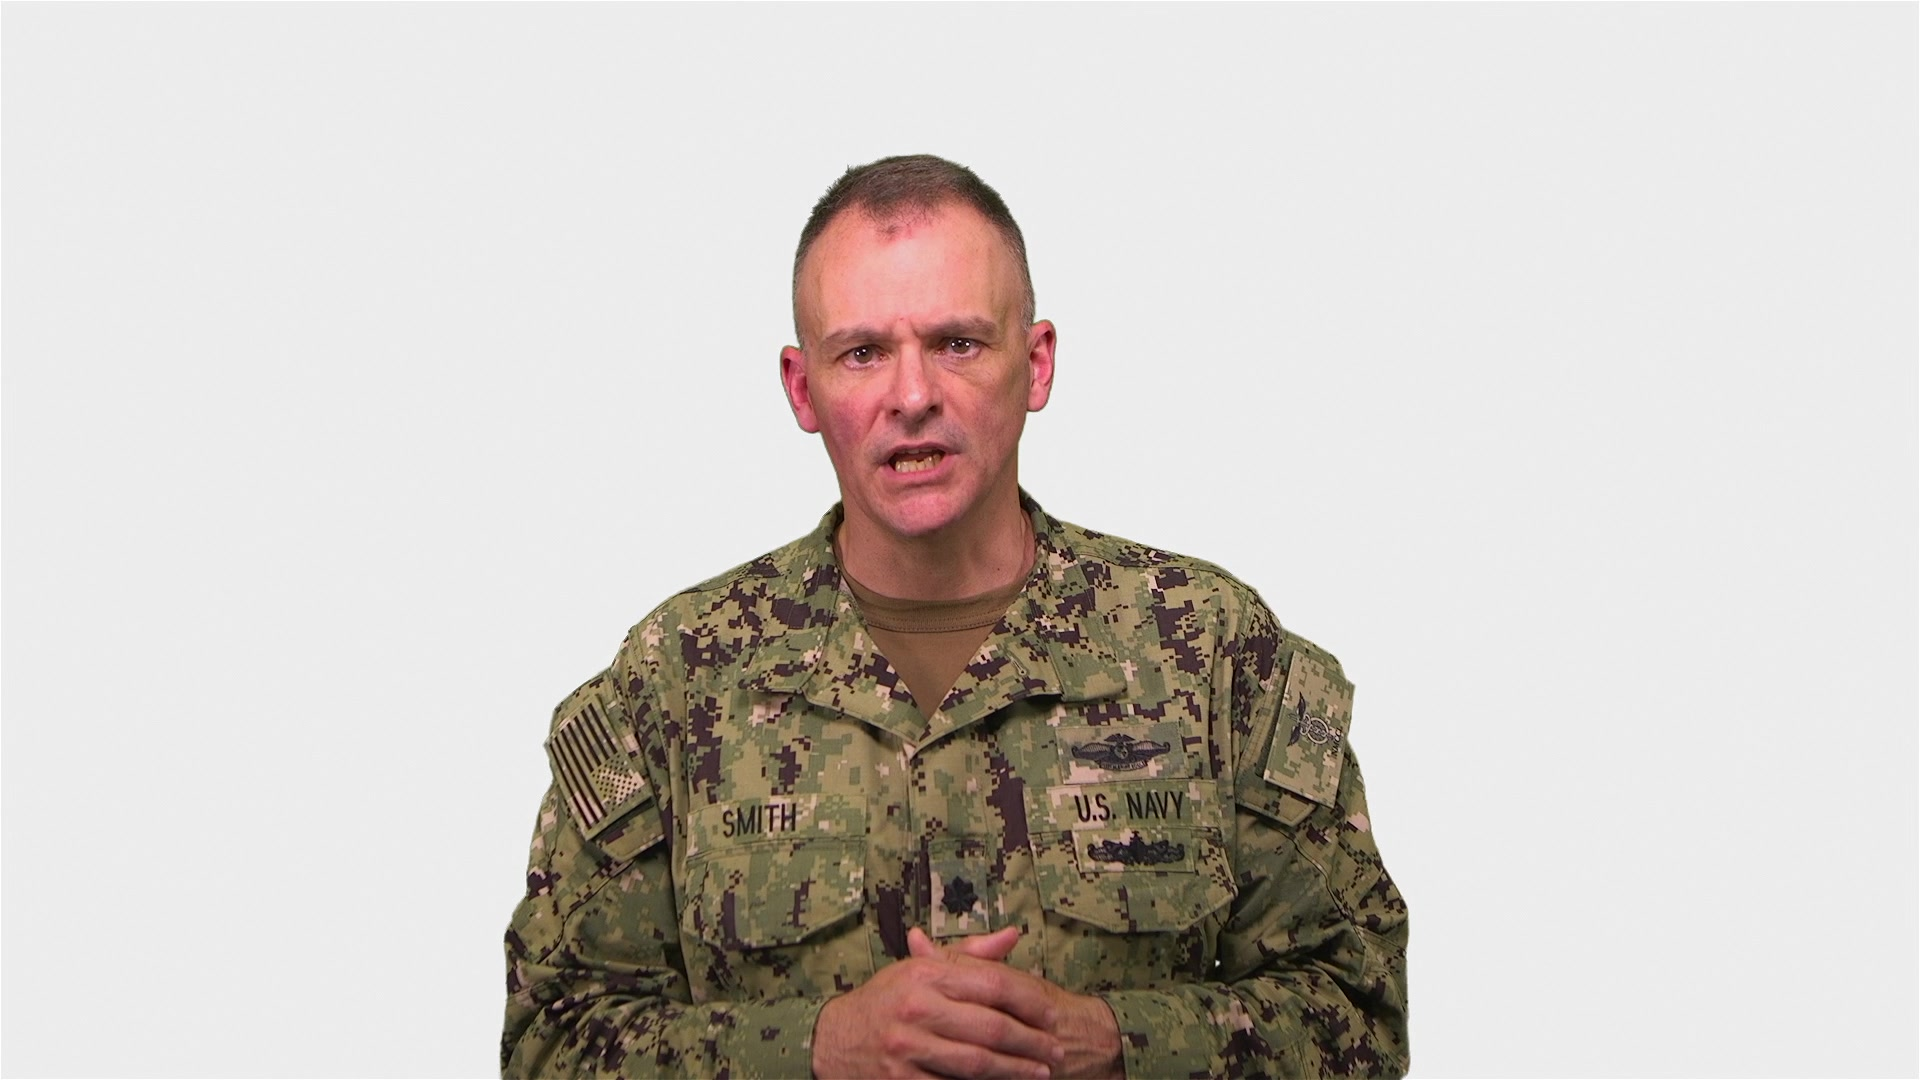 U.S. Navy Commander Wayne R. Smith, Public Health Emergency Officer for Marine Corps Installations East and Director of Medical Services for Naval Medical Center Camp Lejeune, shares information on the importance of social distancing, April 9, 2020. Cmdr. Smith discusses why social distancing is important, when you should observe social distancing, and how it helps prevent the virus. For more information, visit the Centers for Disease Control and Prevention website at http://www.cdc.gov/coronavirus. (U.S. Marine Corps video by Cpl. Alexia Lythos)